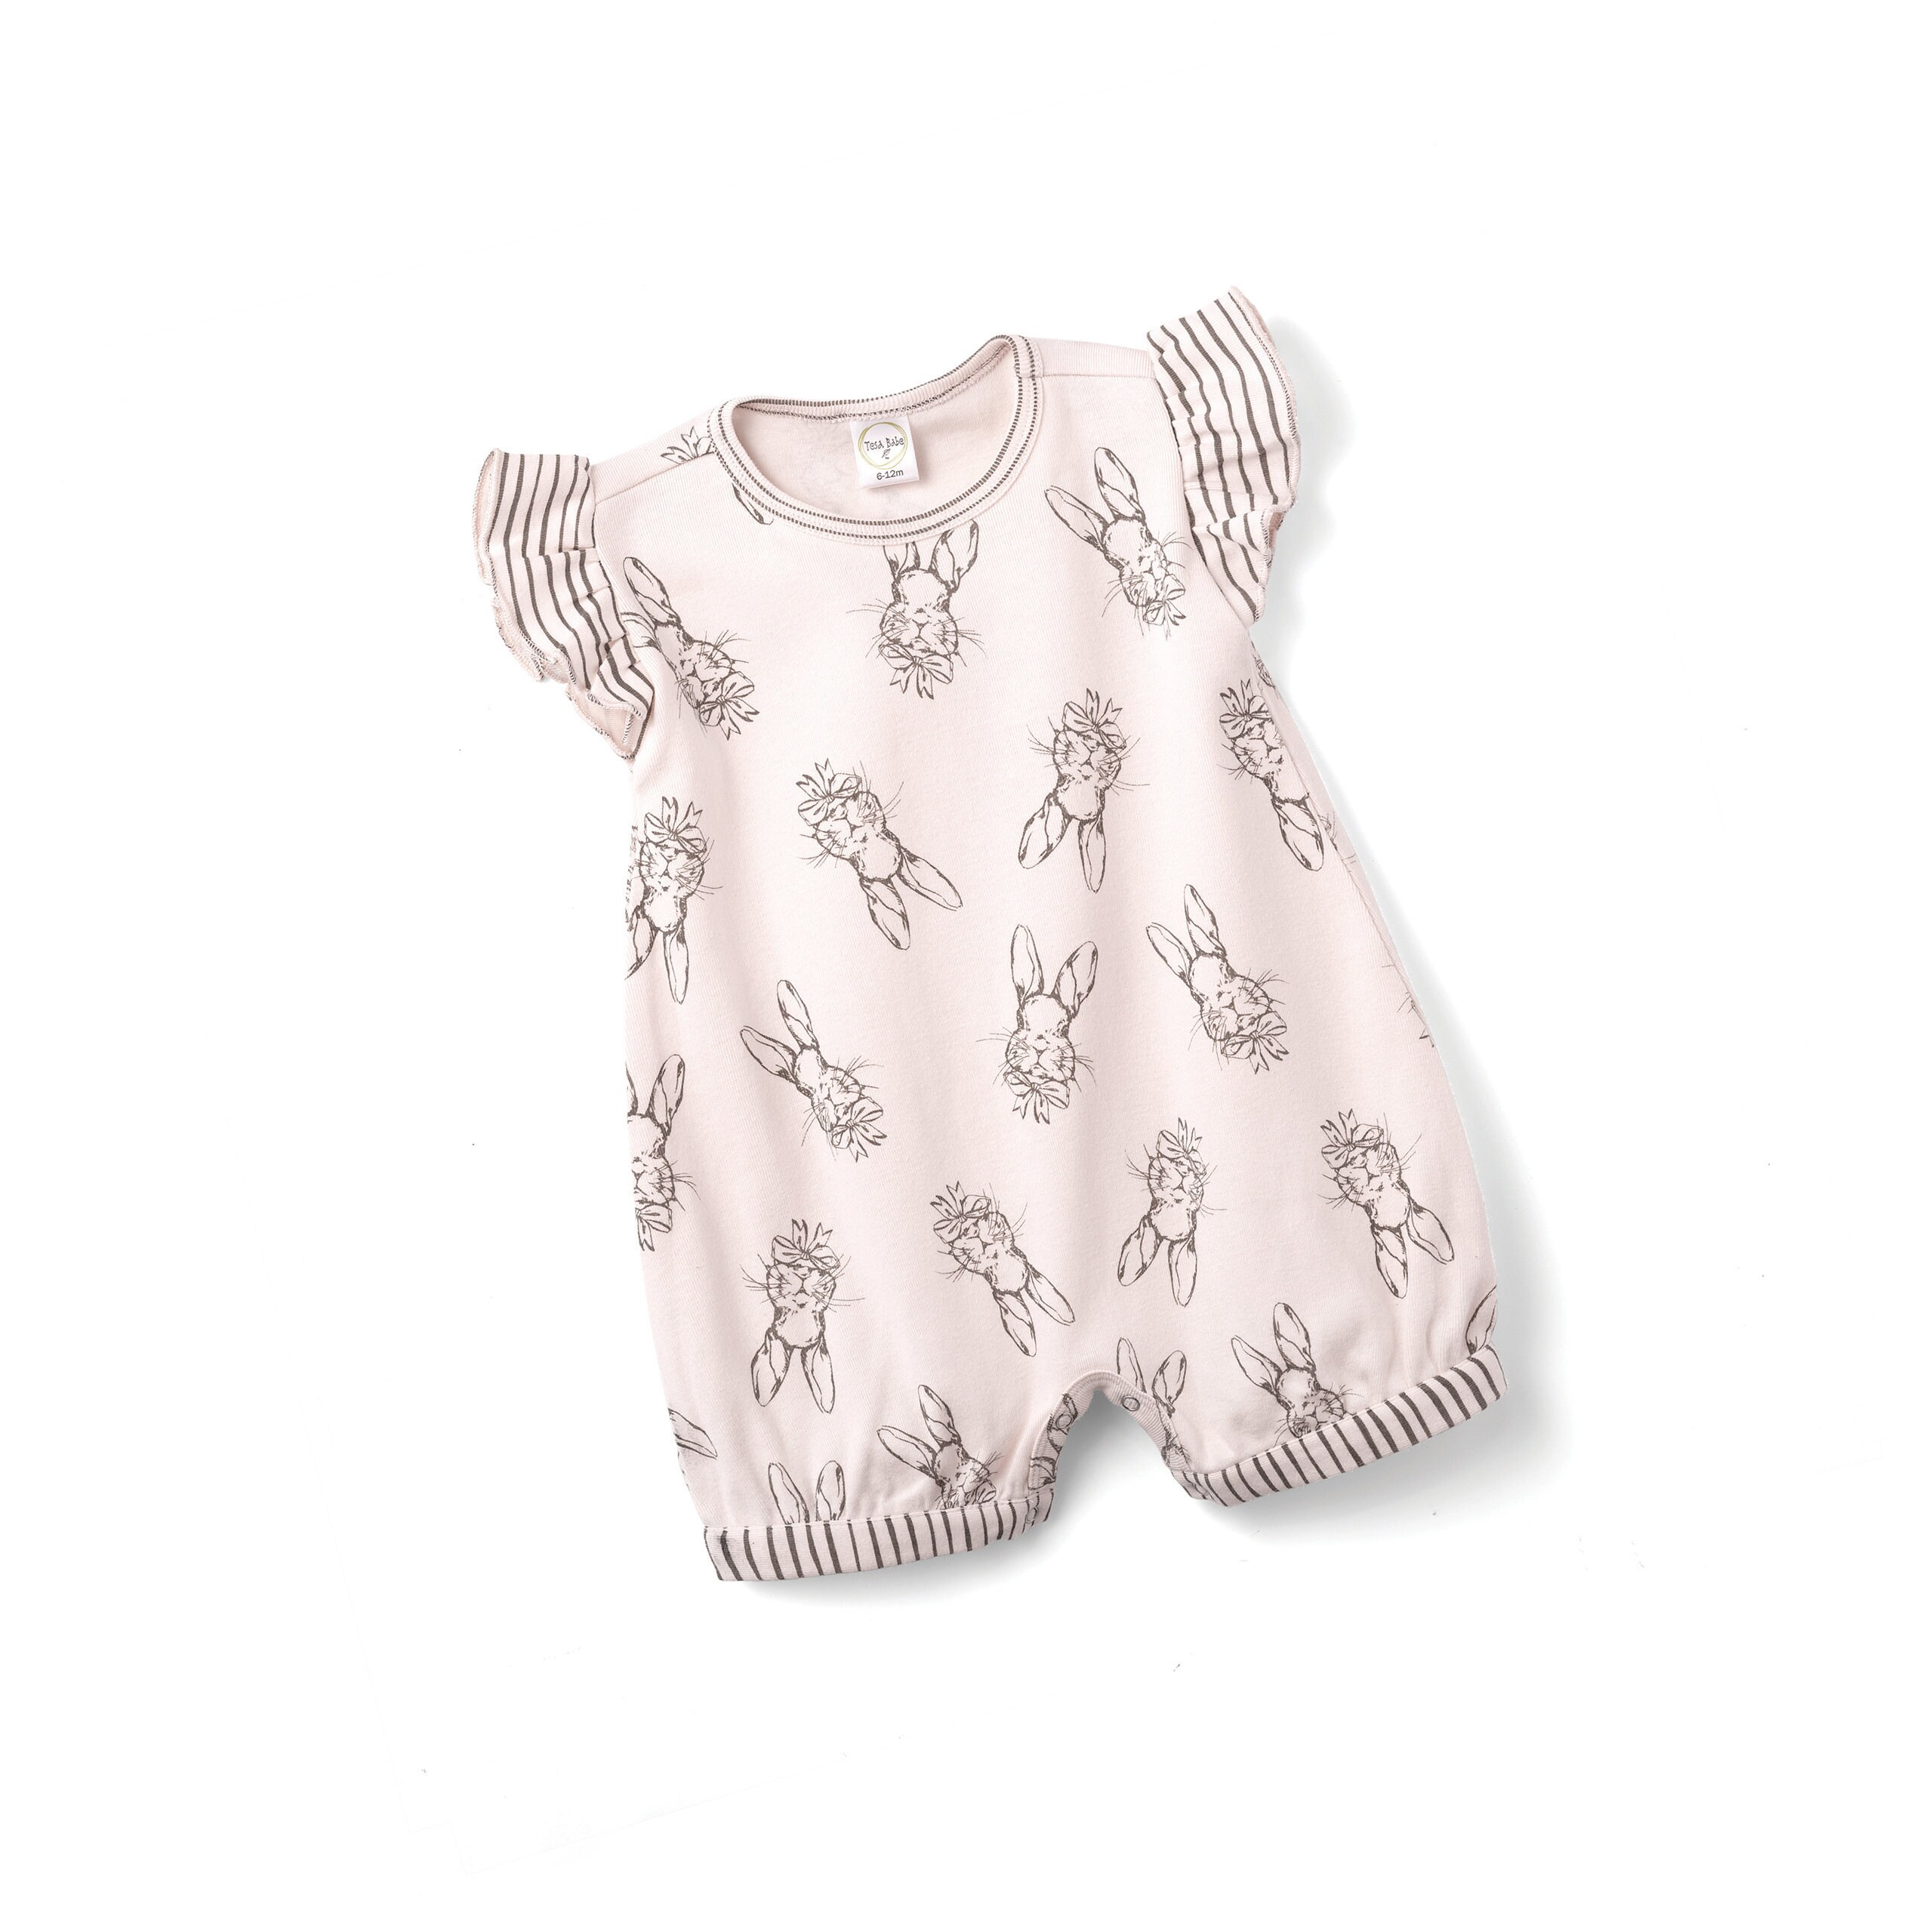 9a894d59af84 WHOLESALE BABY CLOTHES Baby Easter Onesie